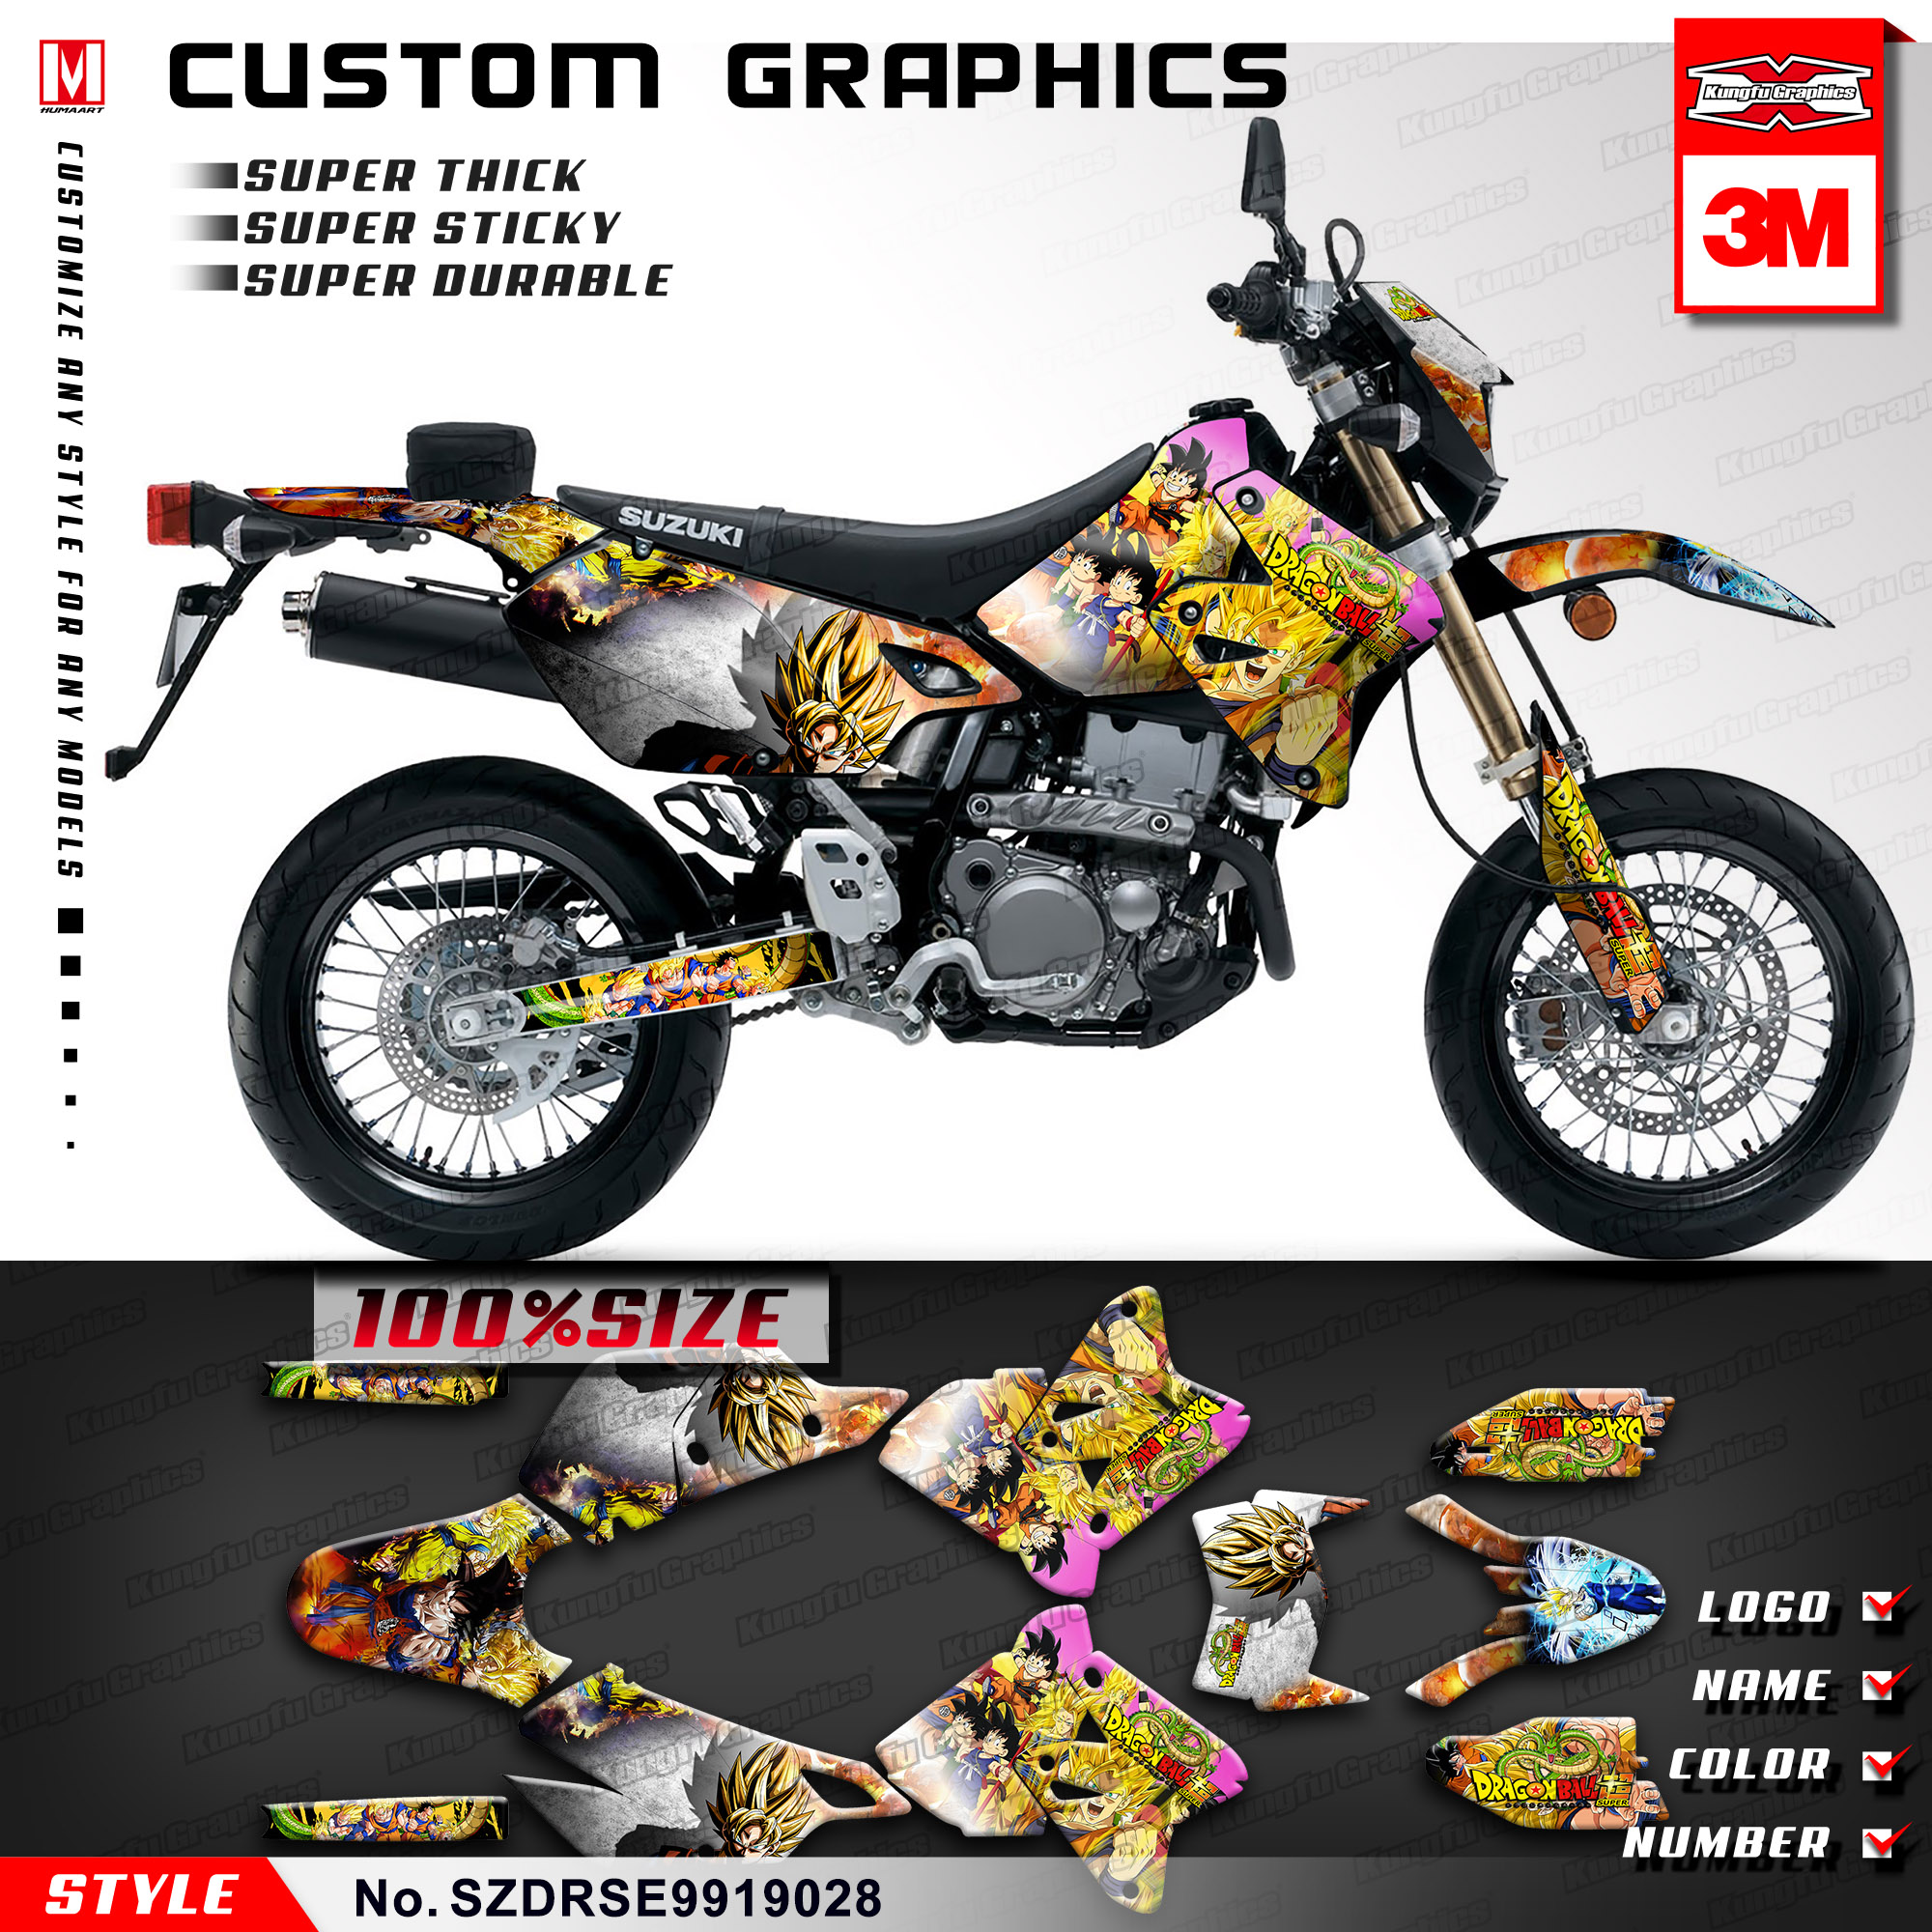 Kungfu graphics stickers design motorcycle decals kit for suzuki drz400sm drz 400 sm drz400e 1999 2019 style no szdrse9919028